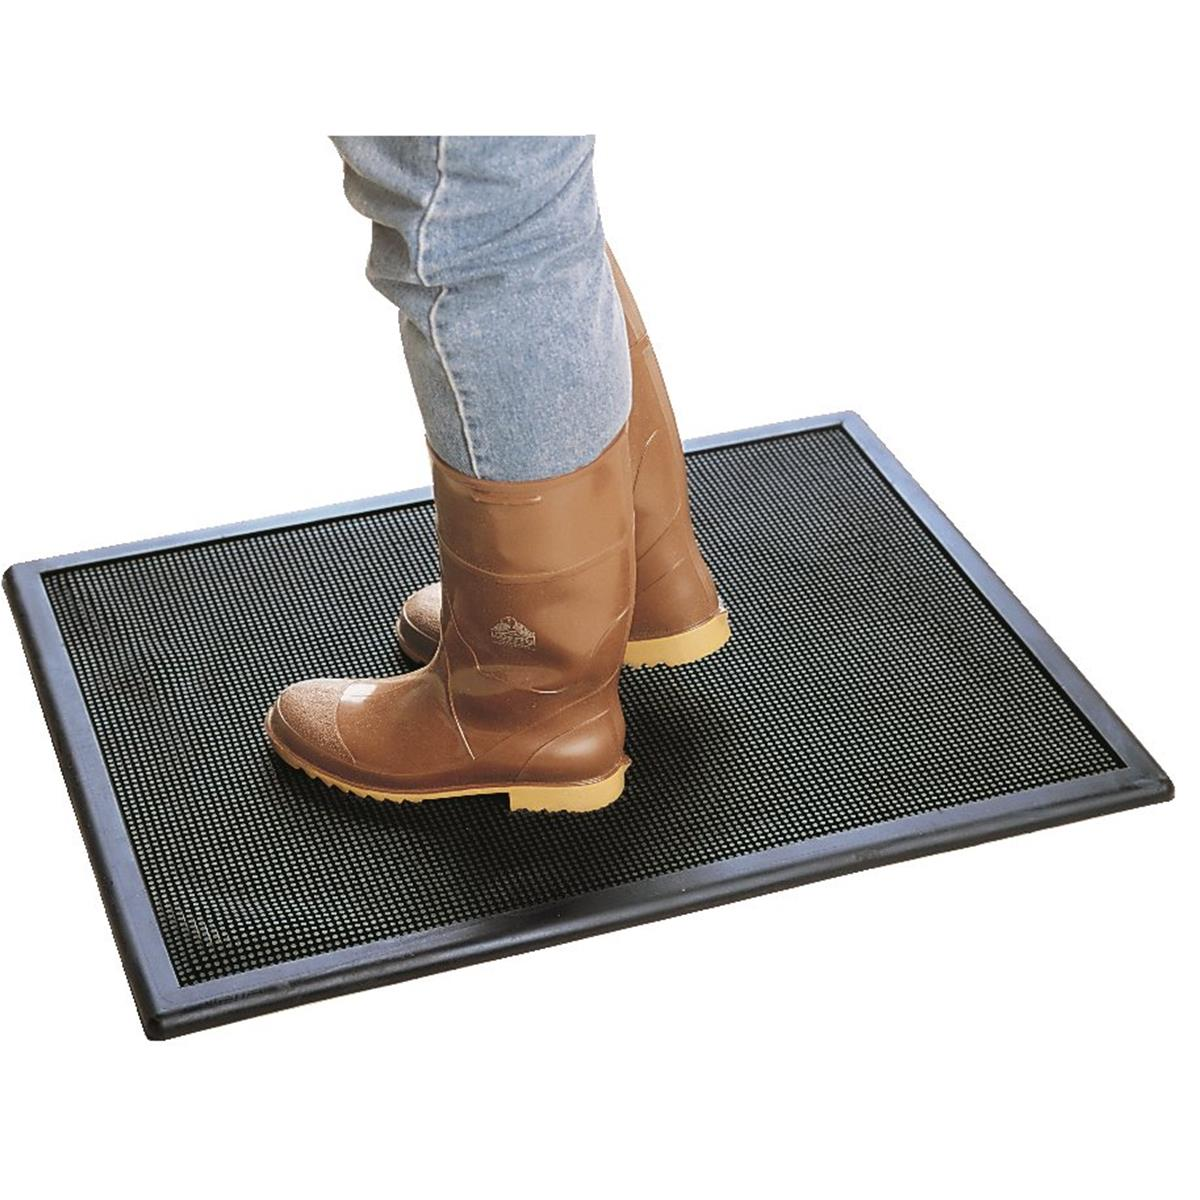 WEARWELL Footbath Mat